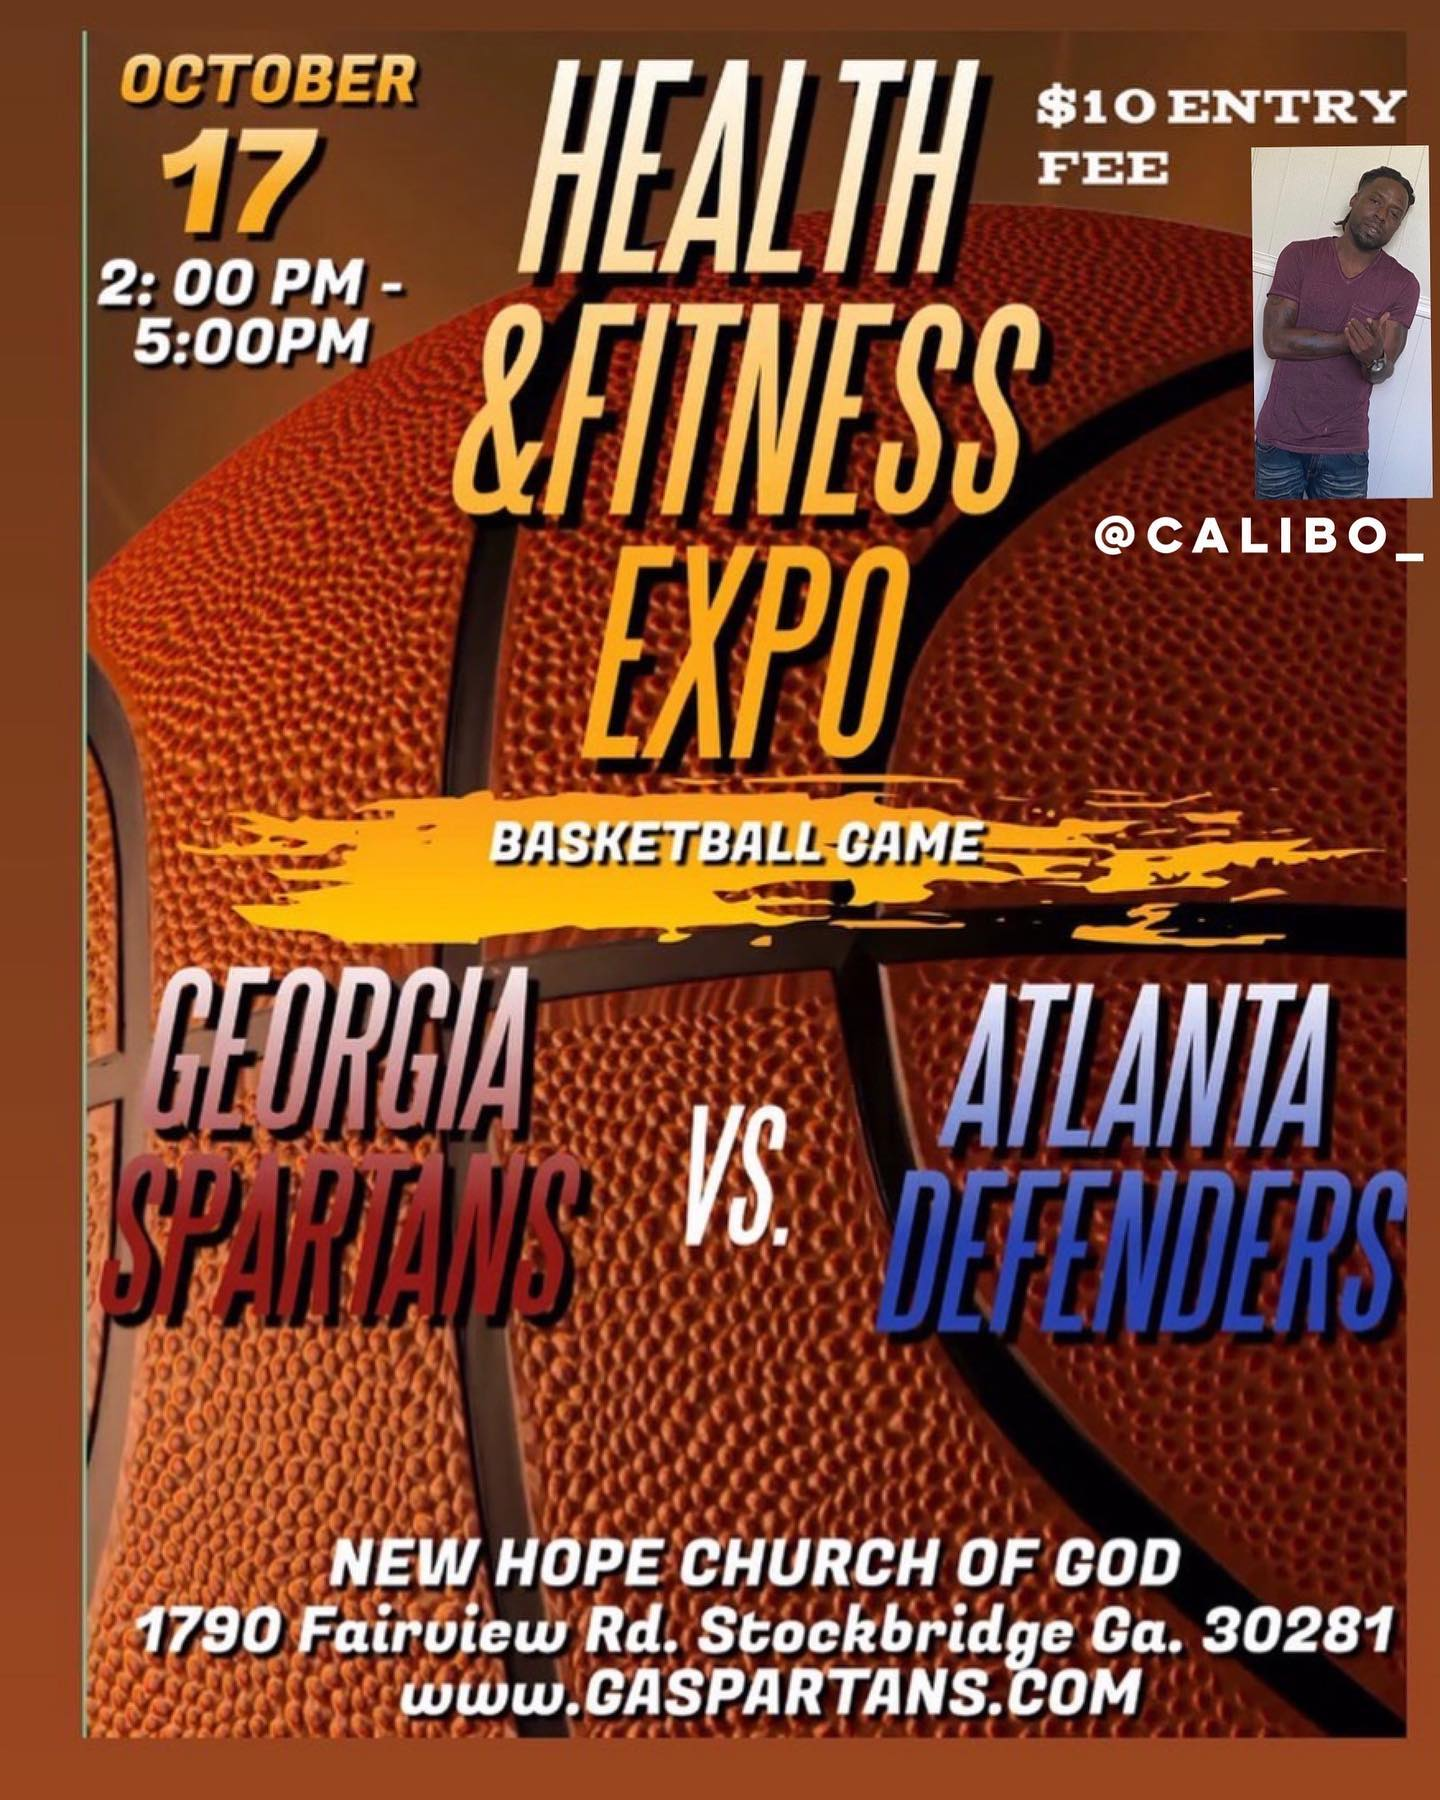 @calibo__ will be hosting on Oct. 17 2pm to 5pm Health&Fitness Expo Basketball Game. New Hope Church of God 1790 Fairview Rd. St